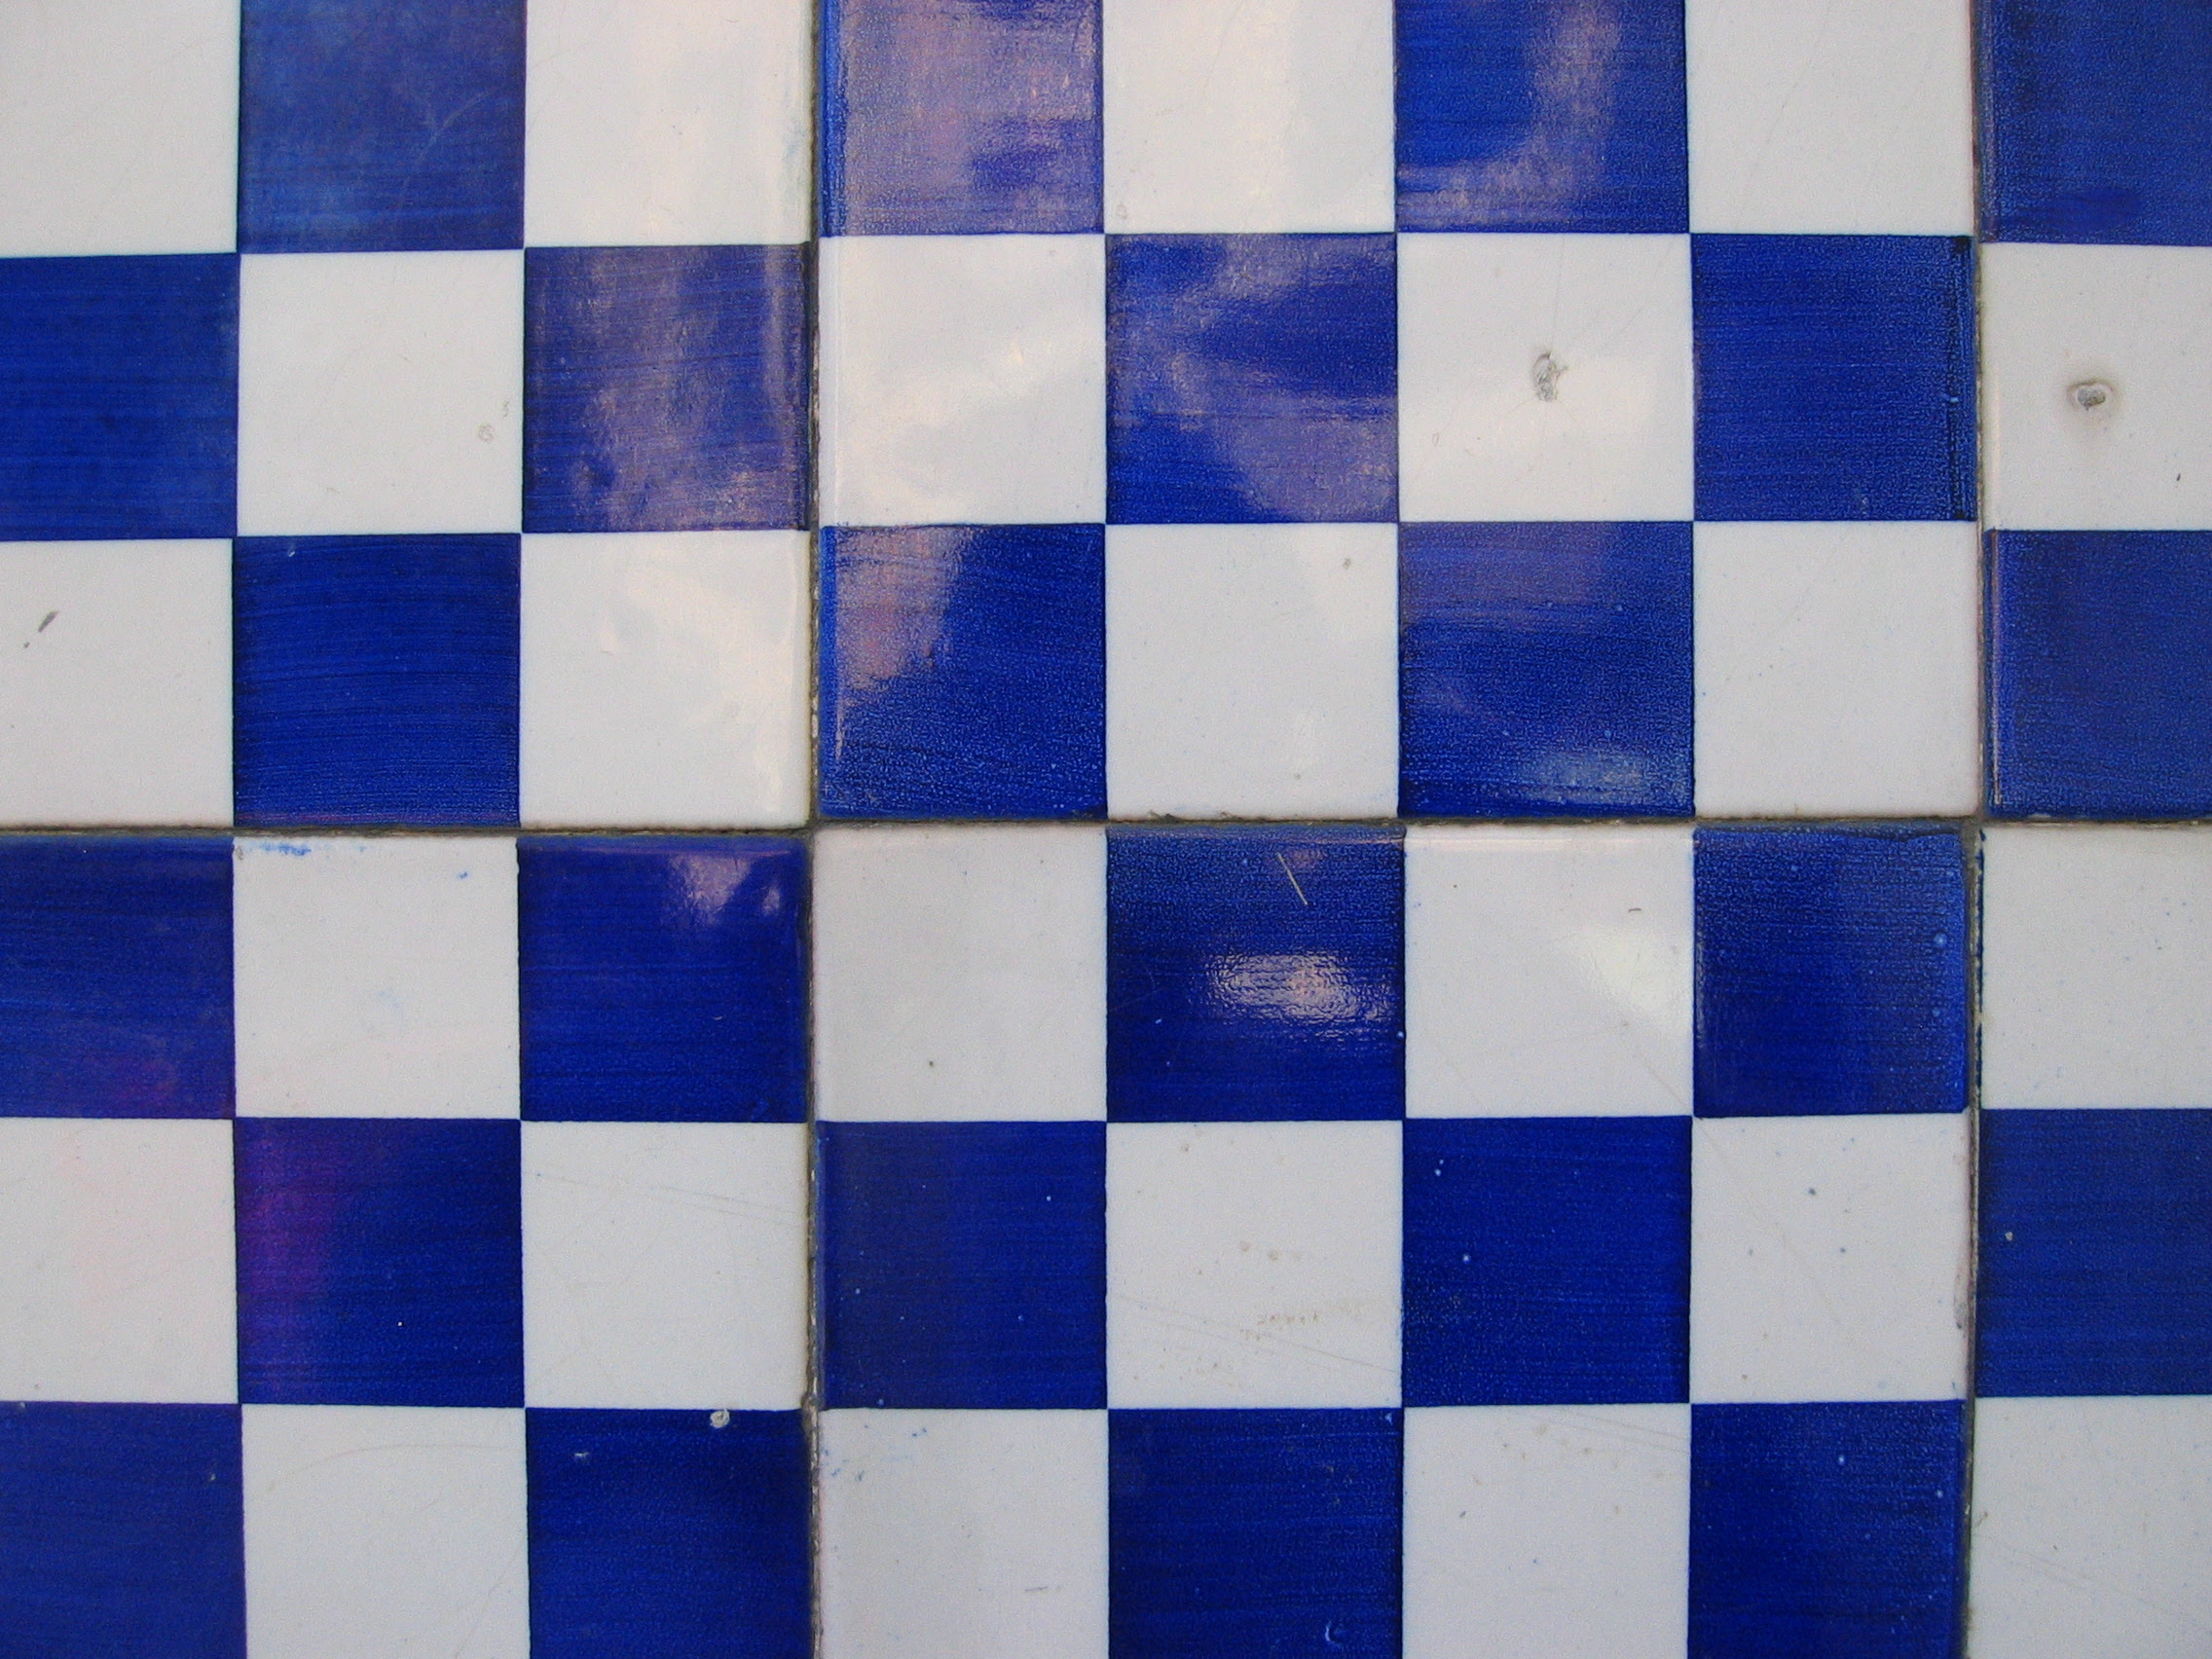 Blue and White Tile